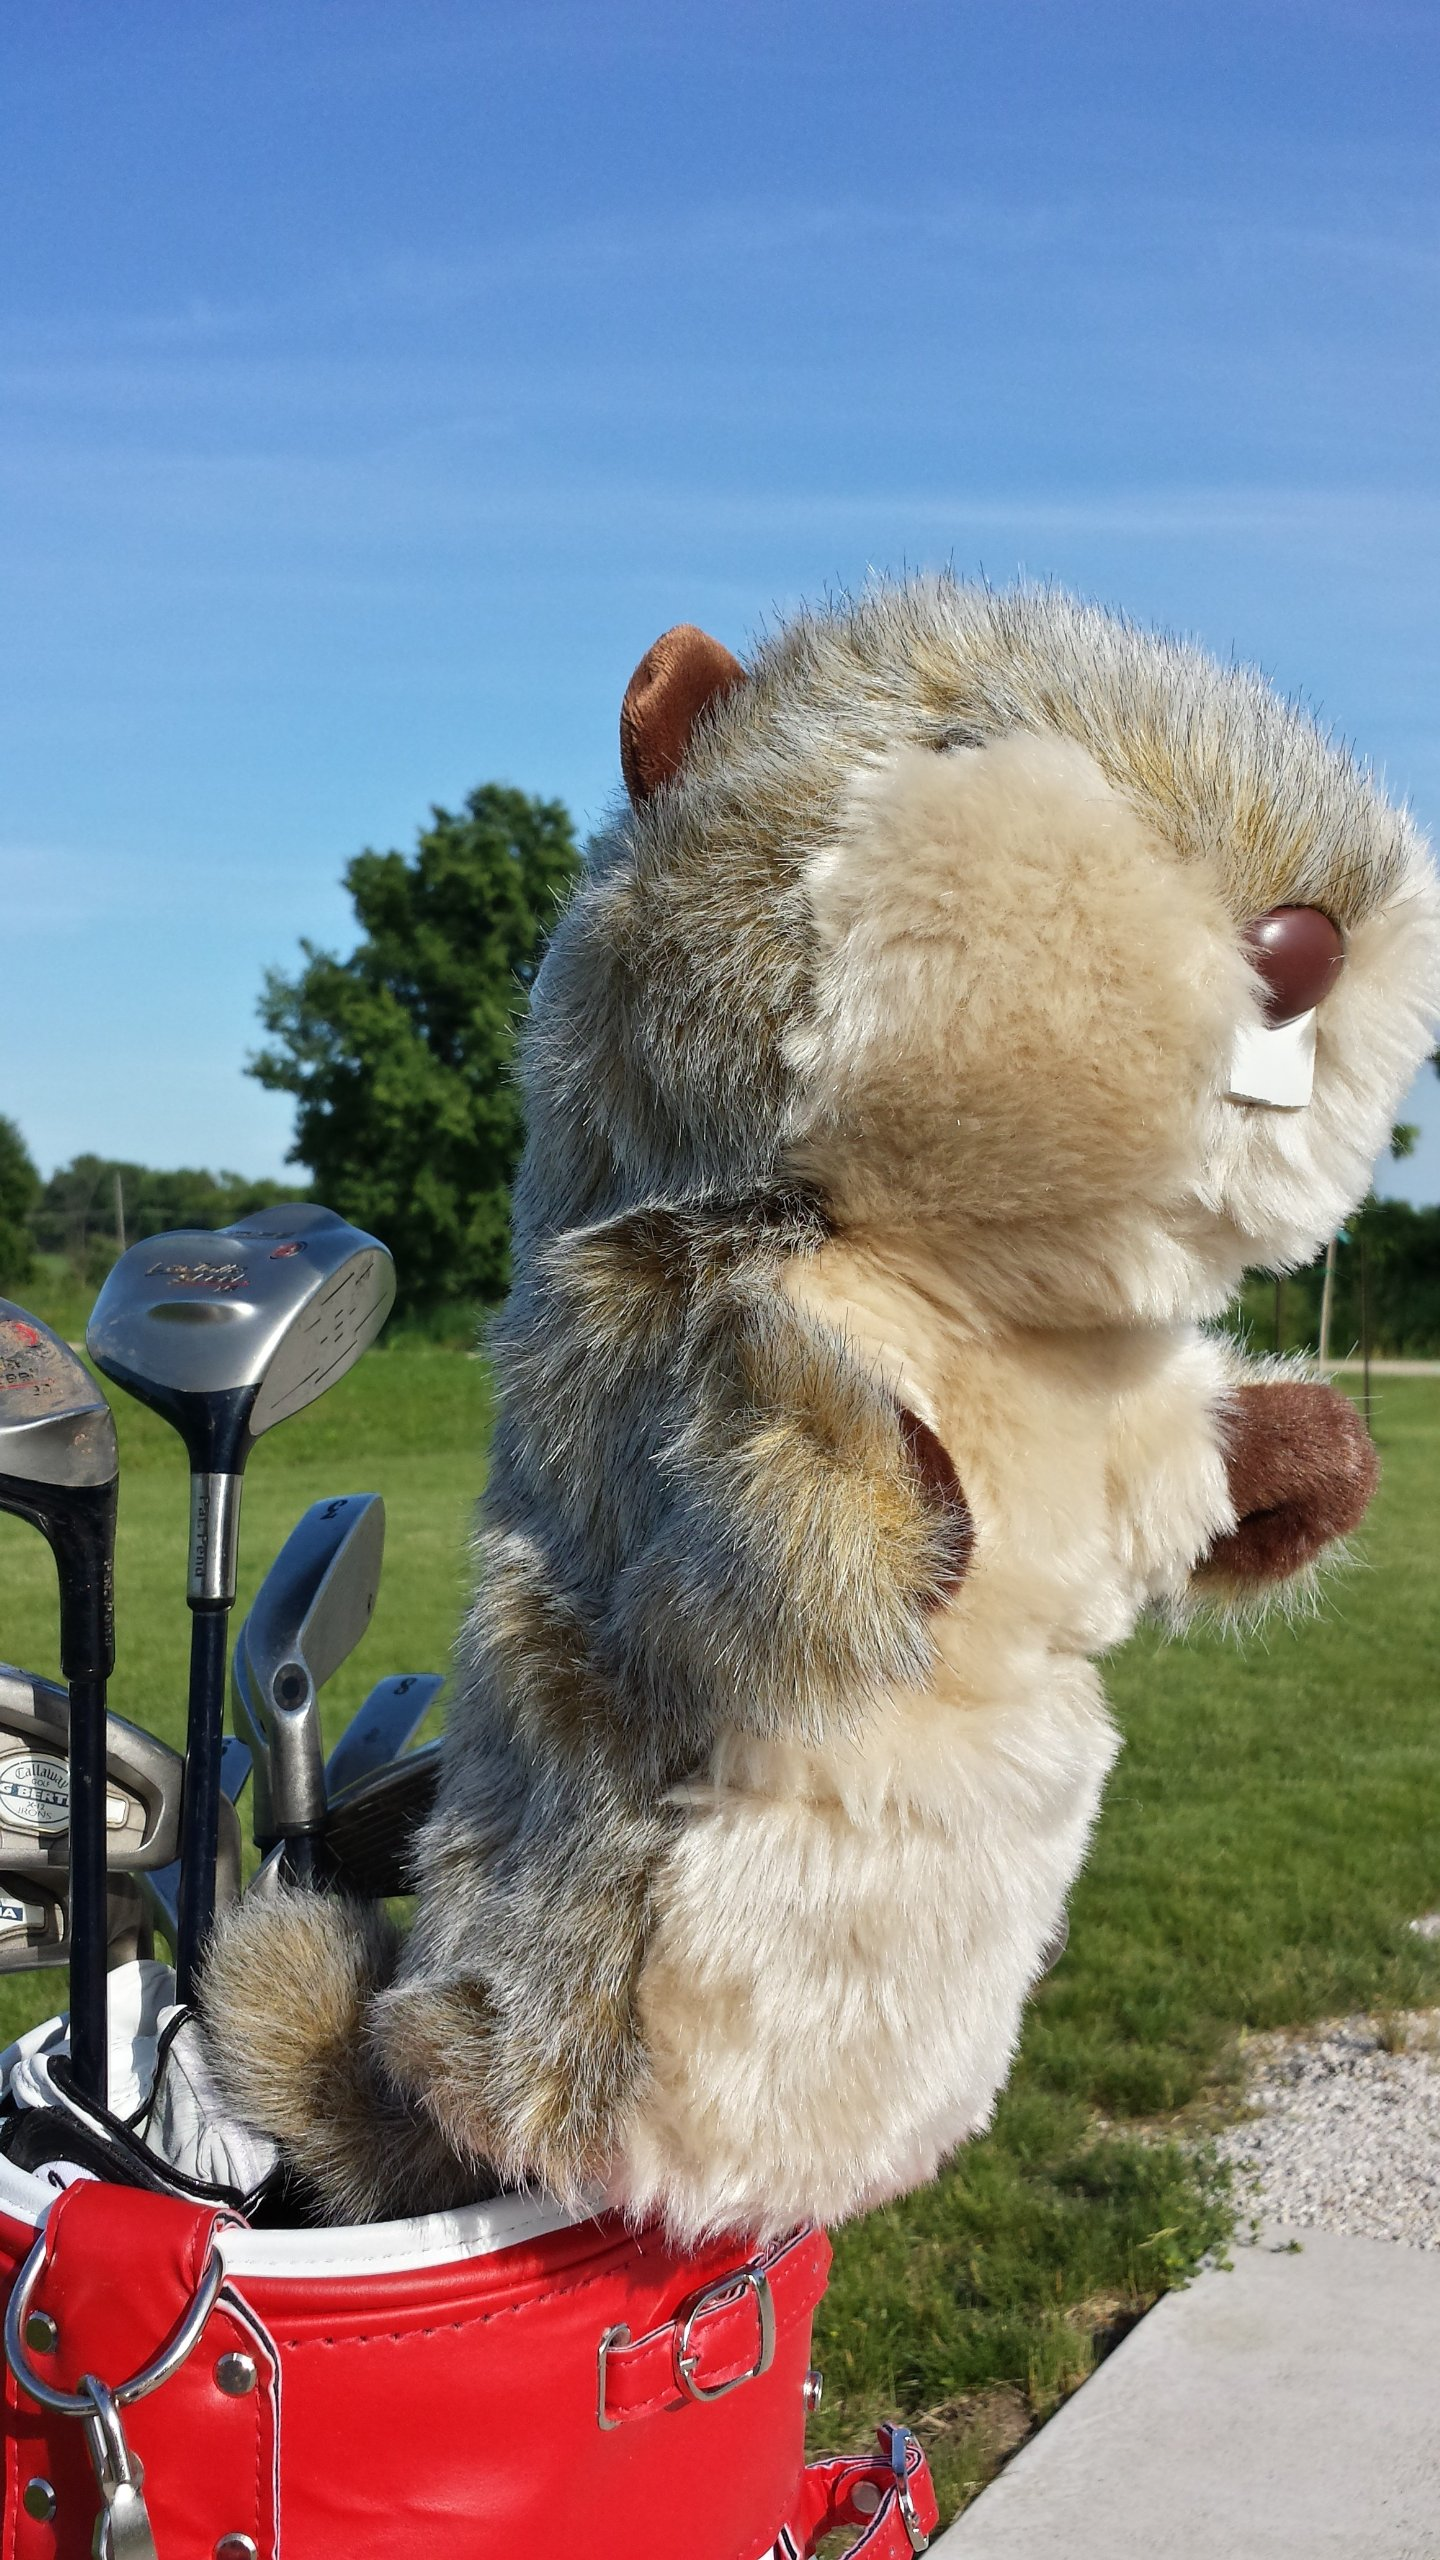 Oversized Gopher Caddyshack Golf Head Cover